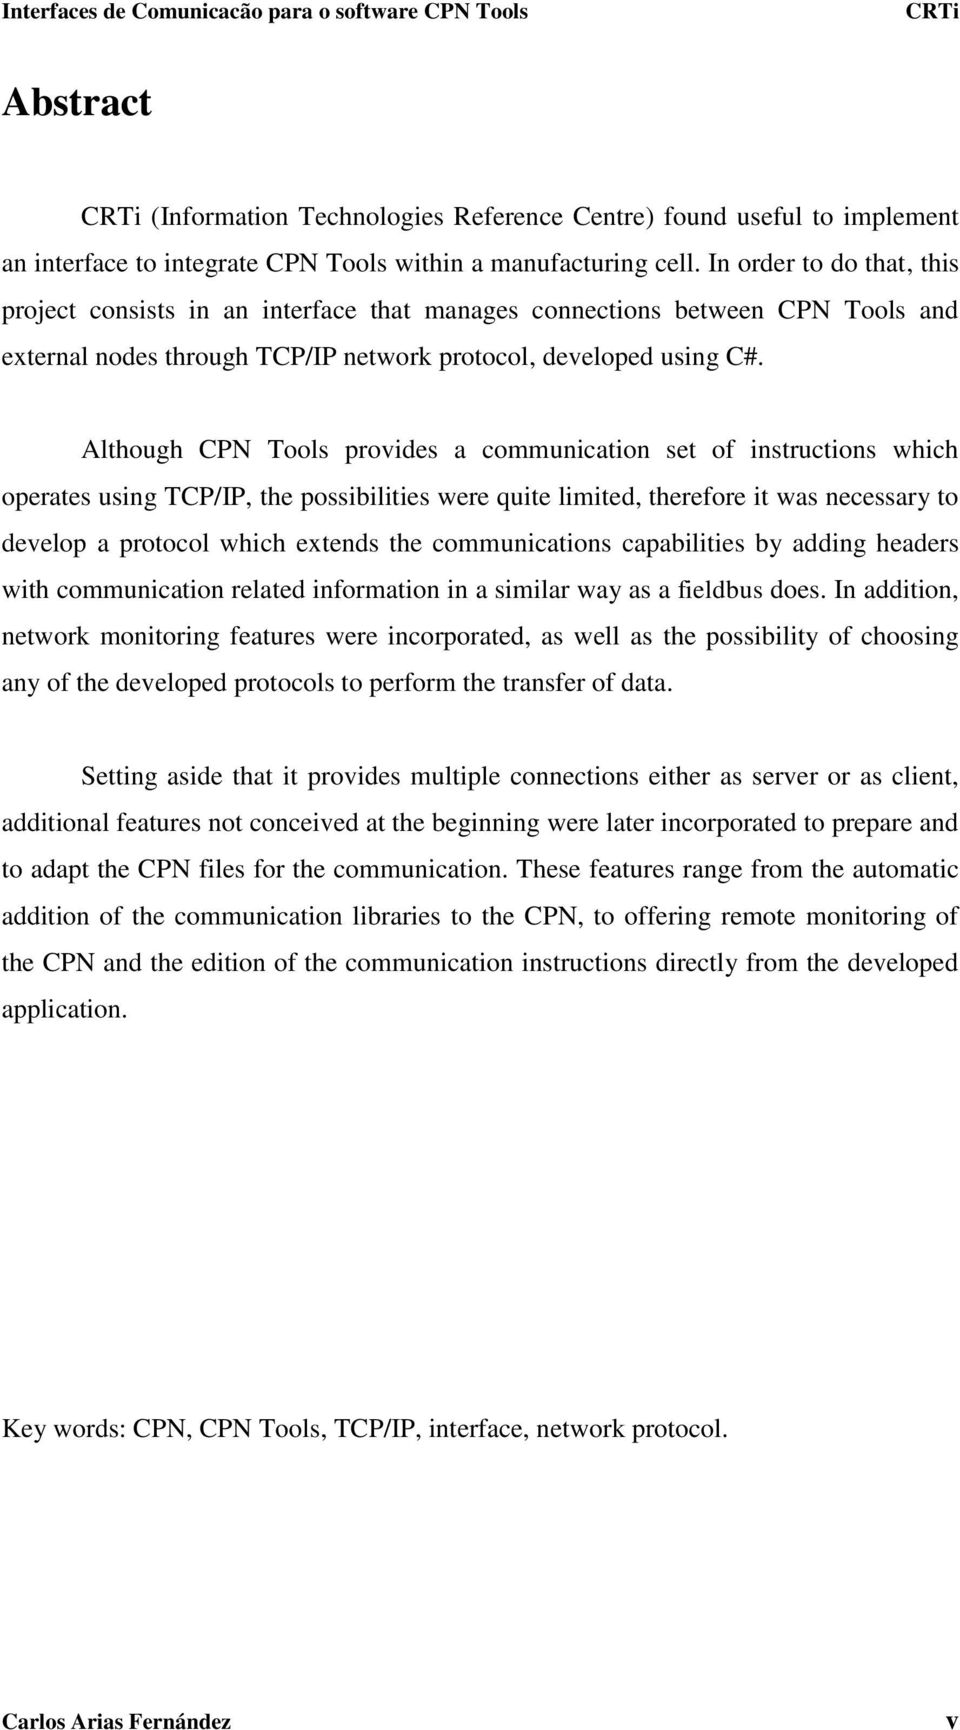 Although CPN Tools provides a communication set of instructions which operates using TCP/IP, the possibilities were quite limited, therefore it was necessary to develop a protocol which extends the